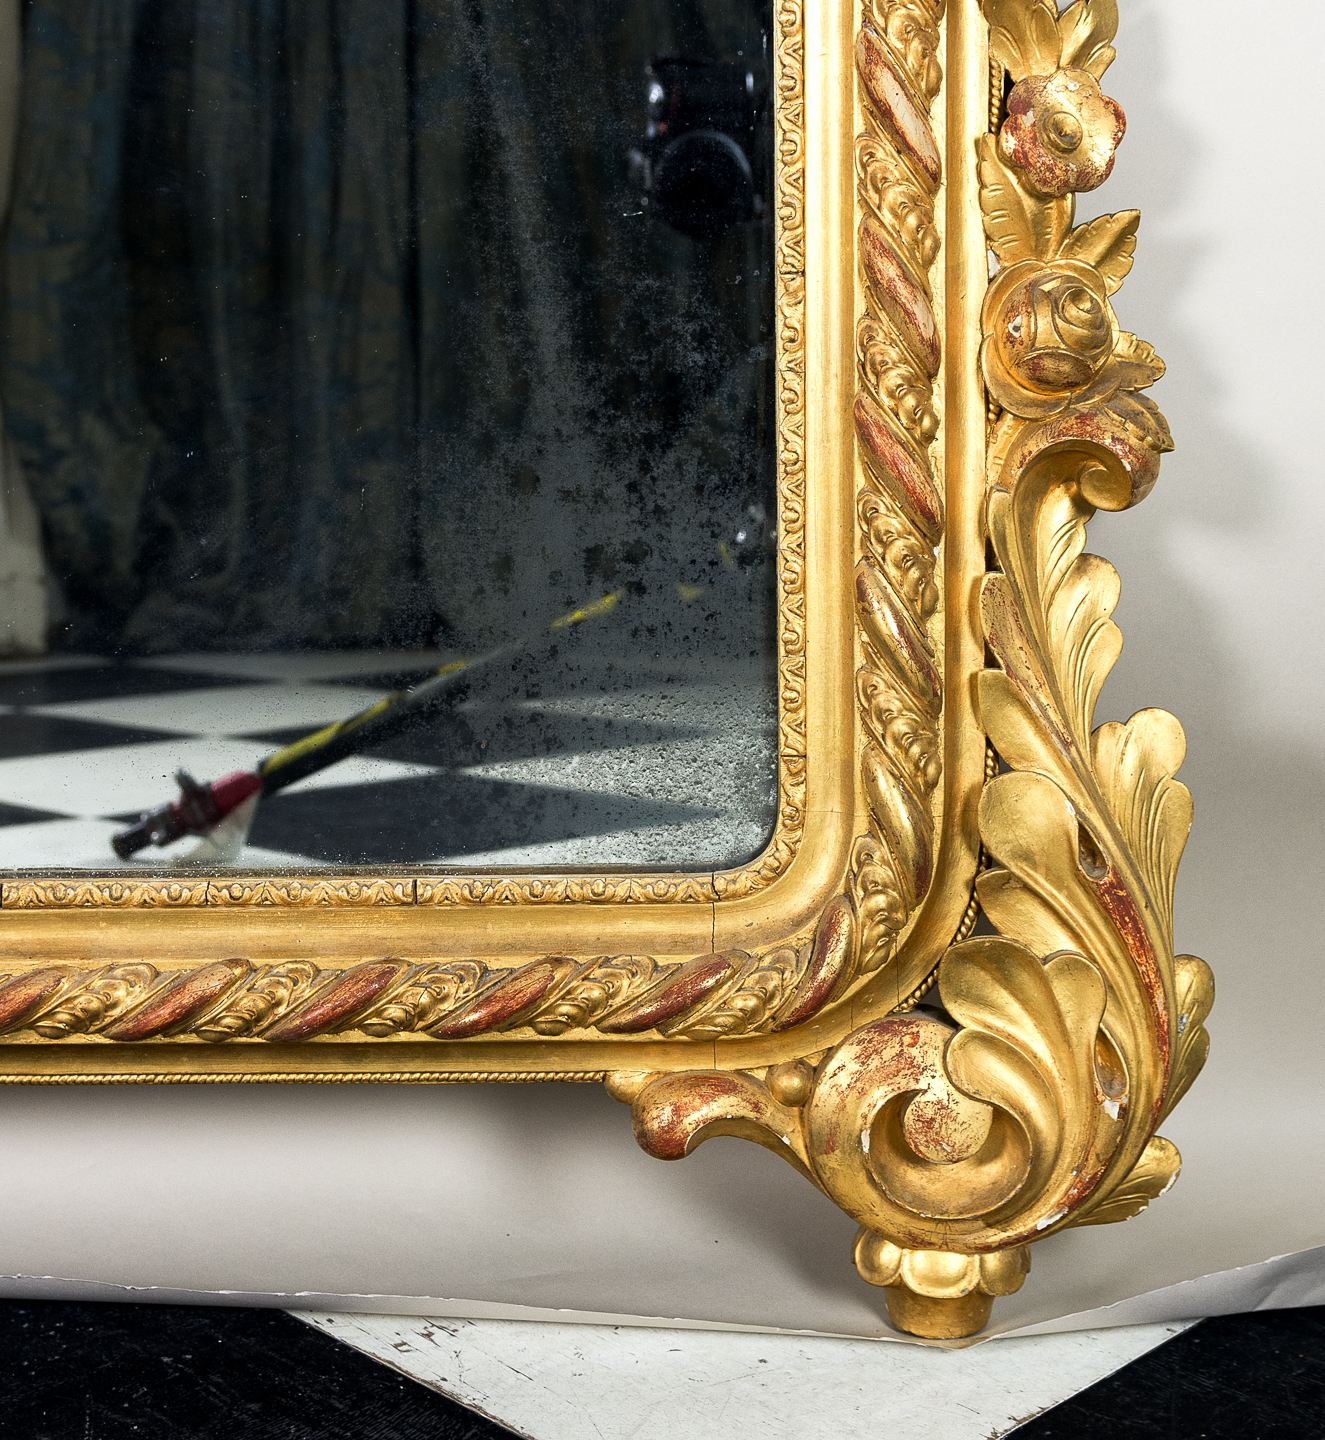 Large nineteenth century French giltwood mirror,-138690